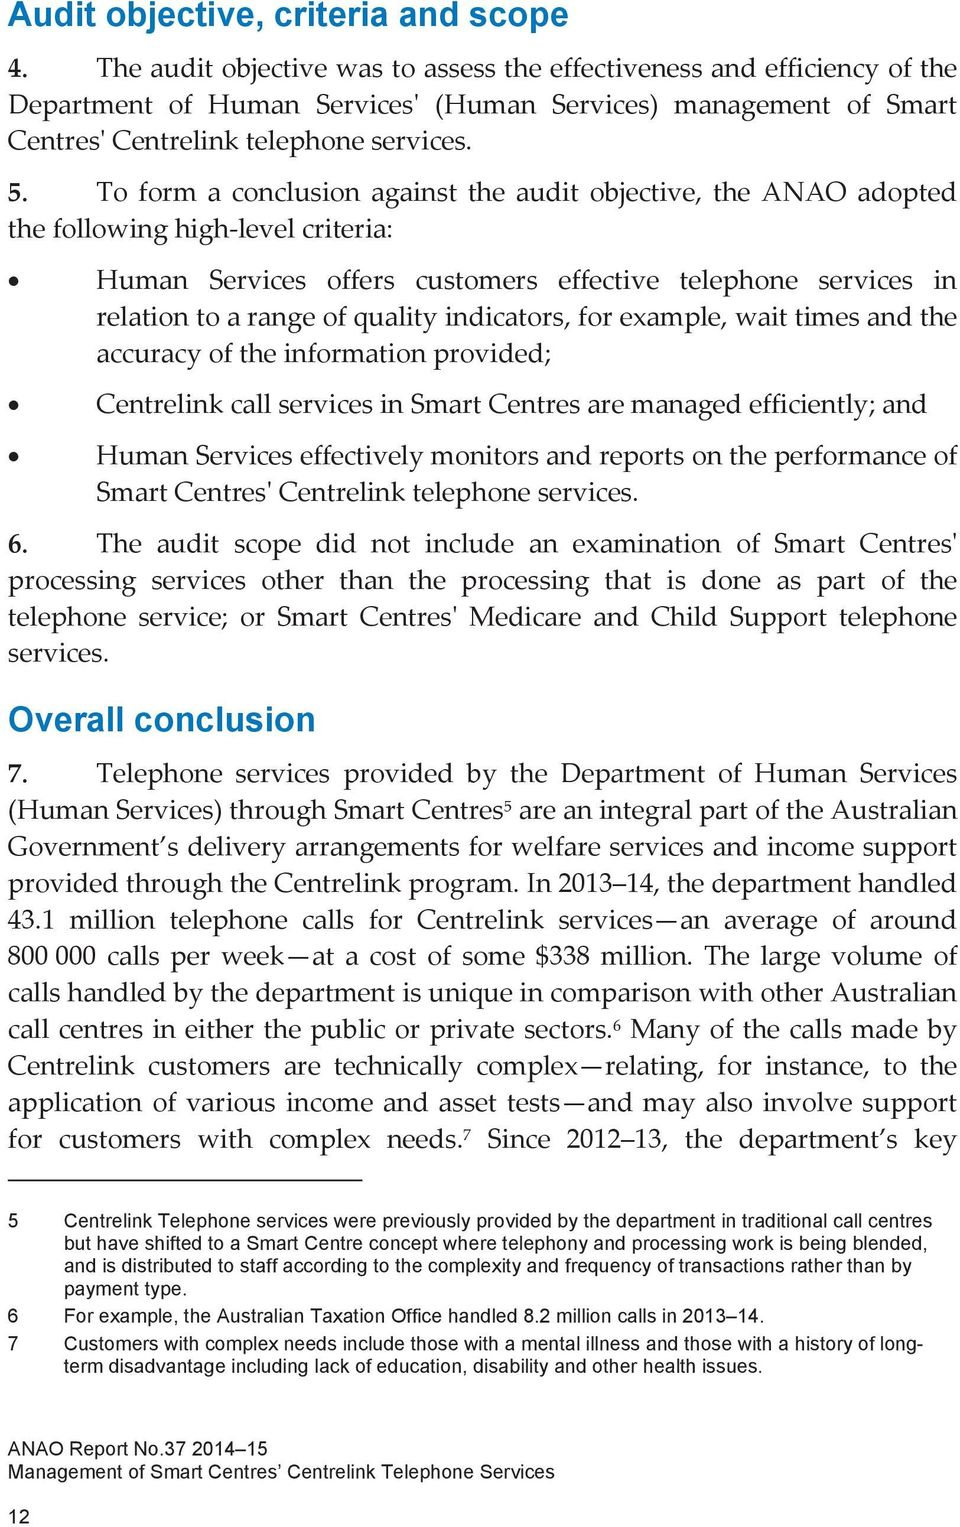 To form a conclusion against the audit objective, the ANAO adopted the following high level criteria: Human Services offers customers effective telephone services in relation to a range of quality